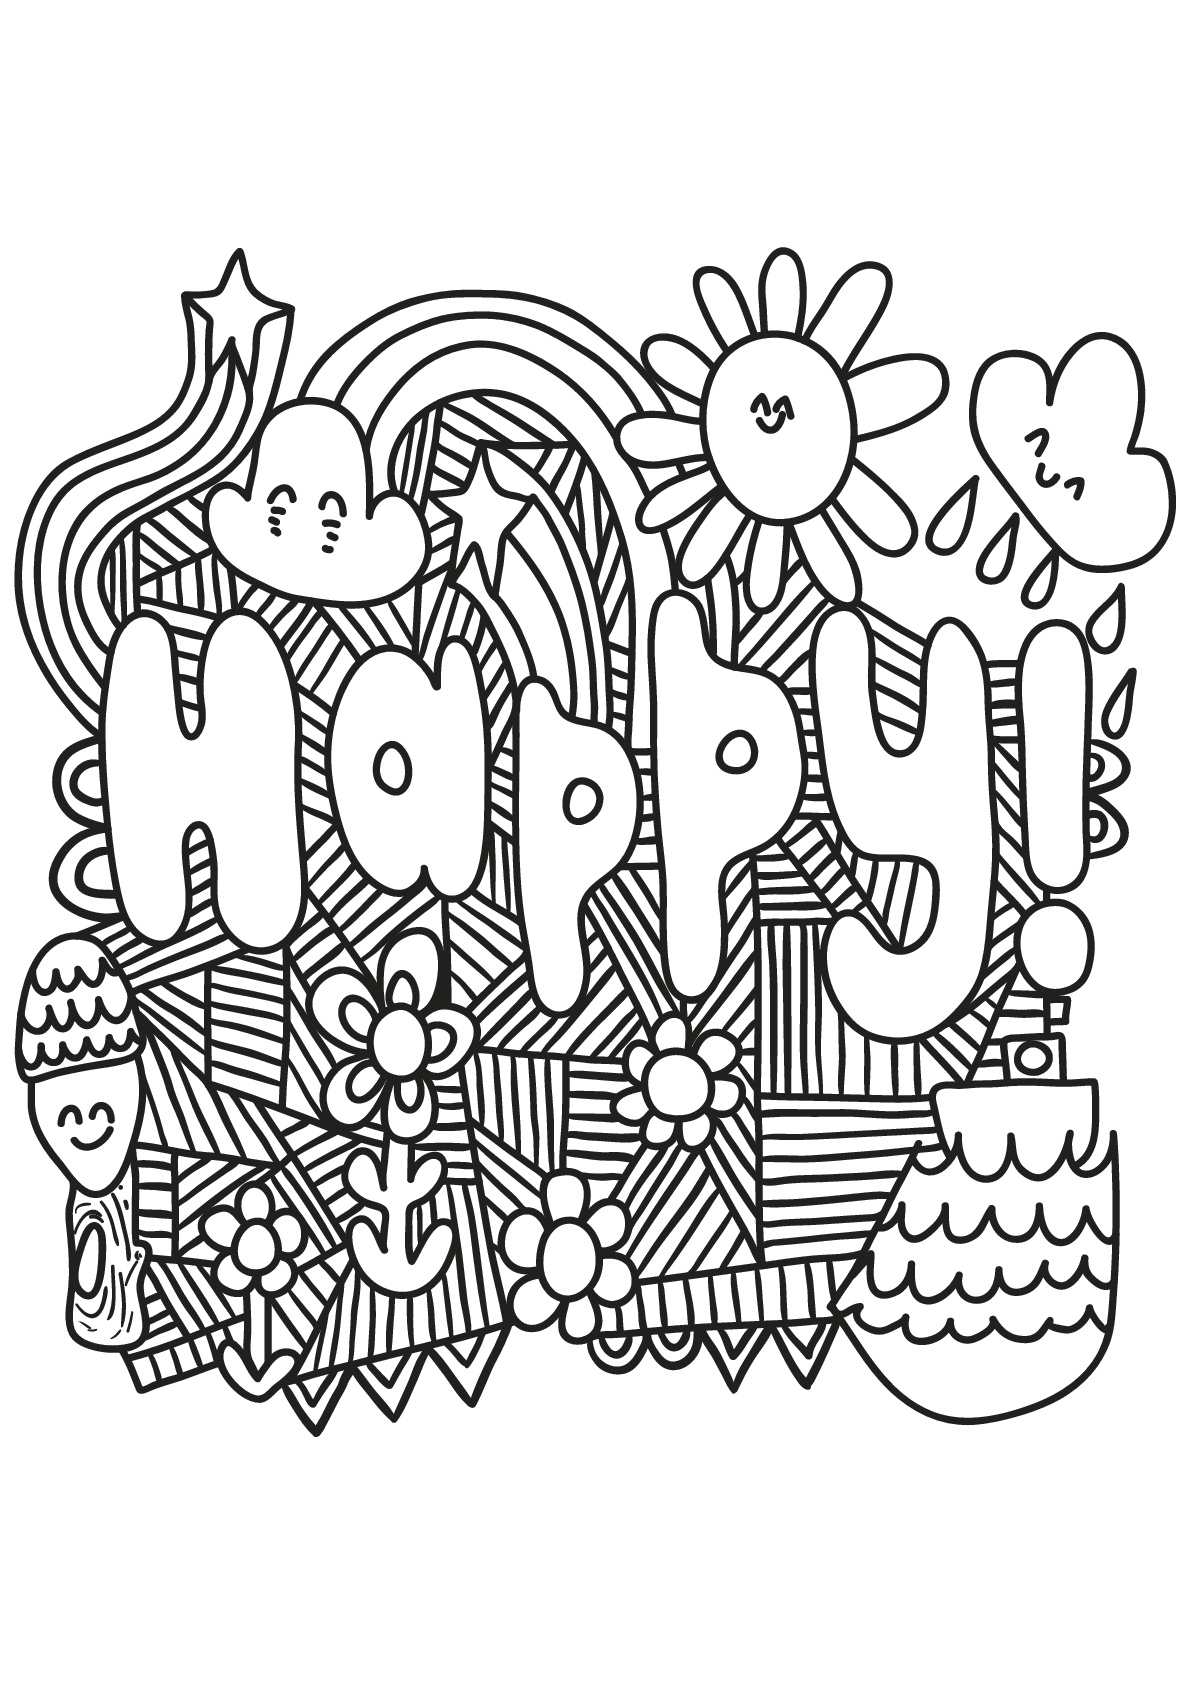 Coloring free book quote 4 happy coloring free book quote 3